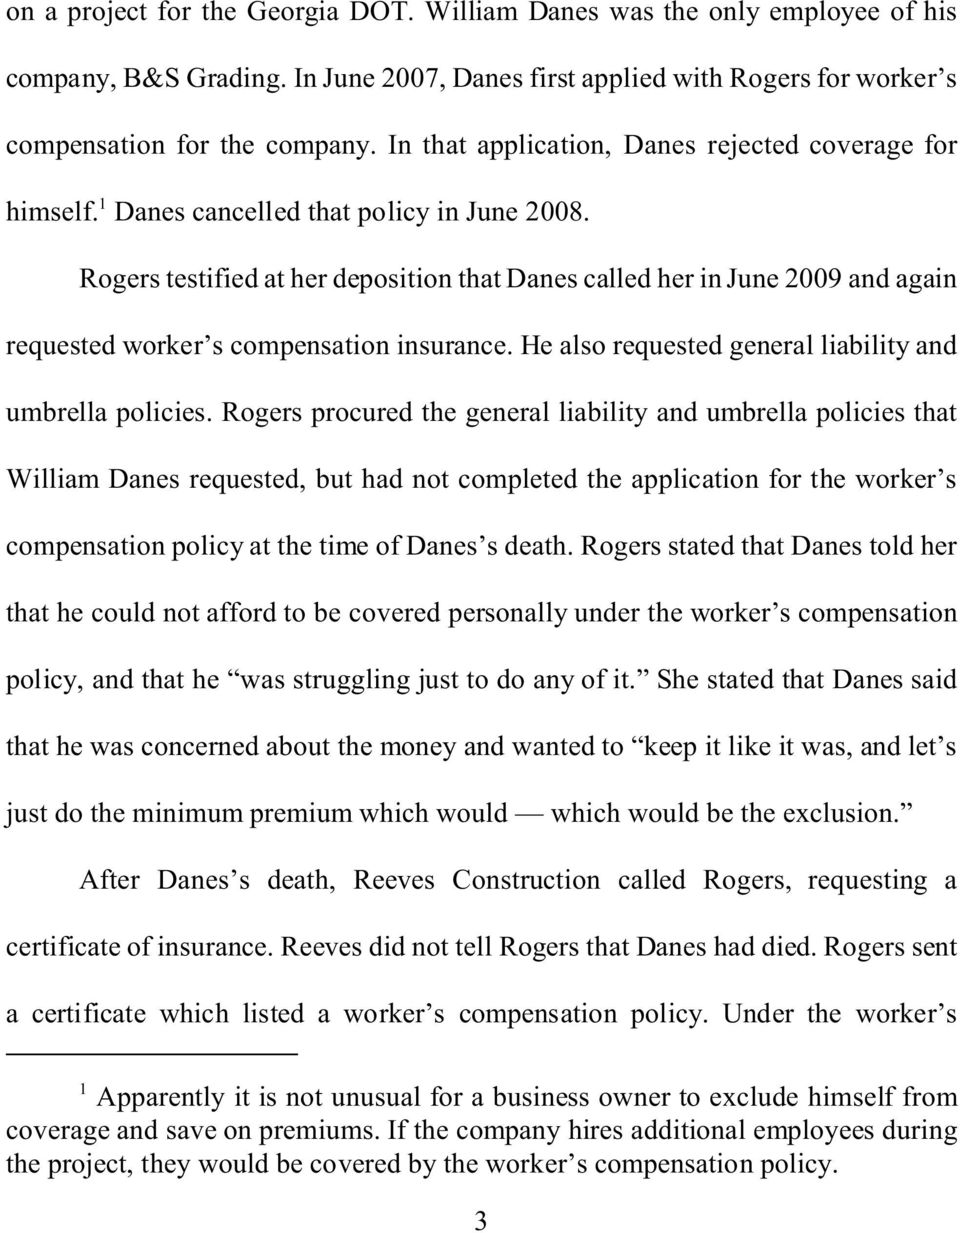 Rogers testified at her deposition that Danes called her in June 2009 and again requested worker s compensation insurance. He also requested general liability and umbrella policies.